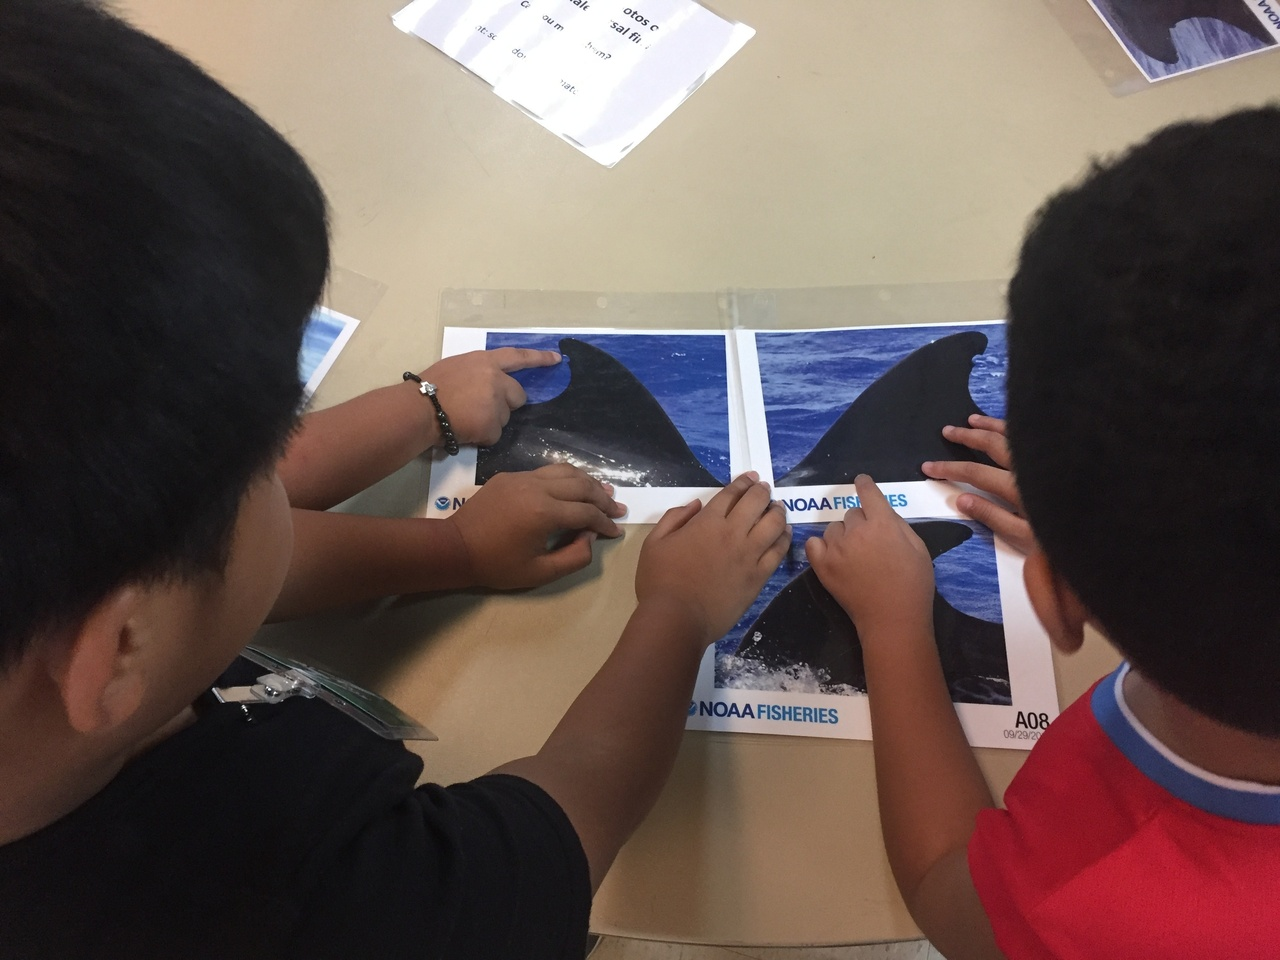 Camp Maga'lahi students learn about dorsal fin identification through the dorsal matching activity.